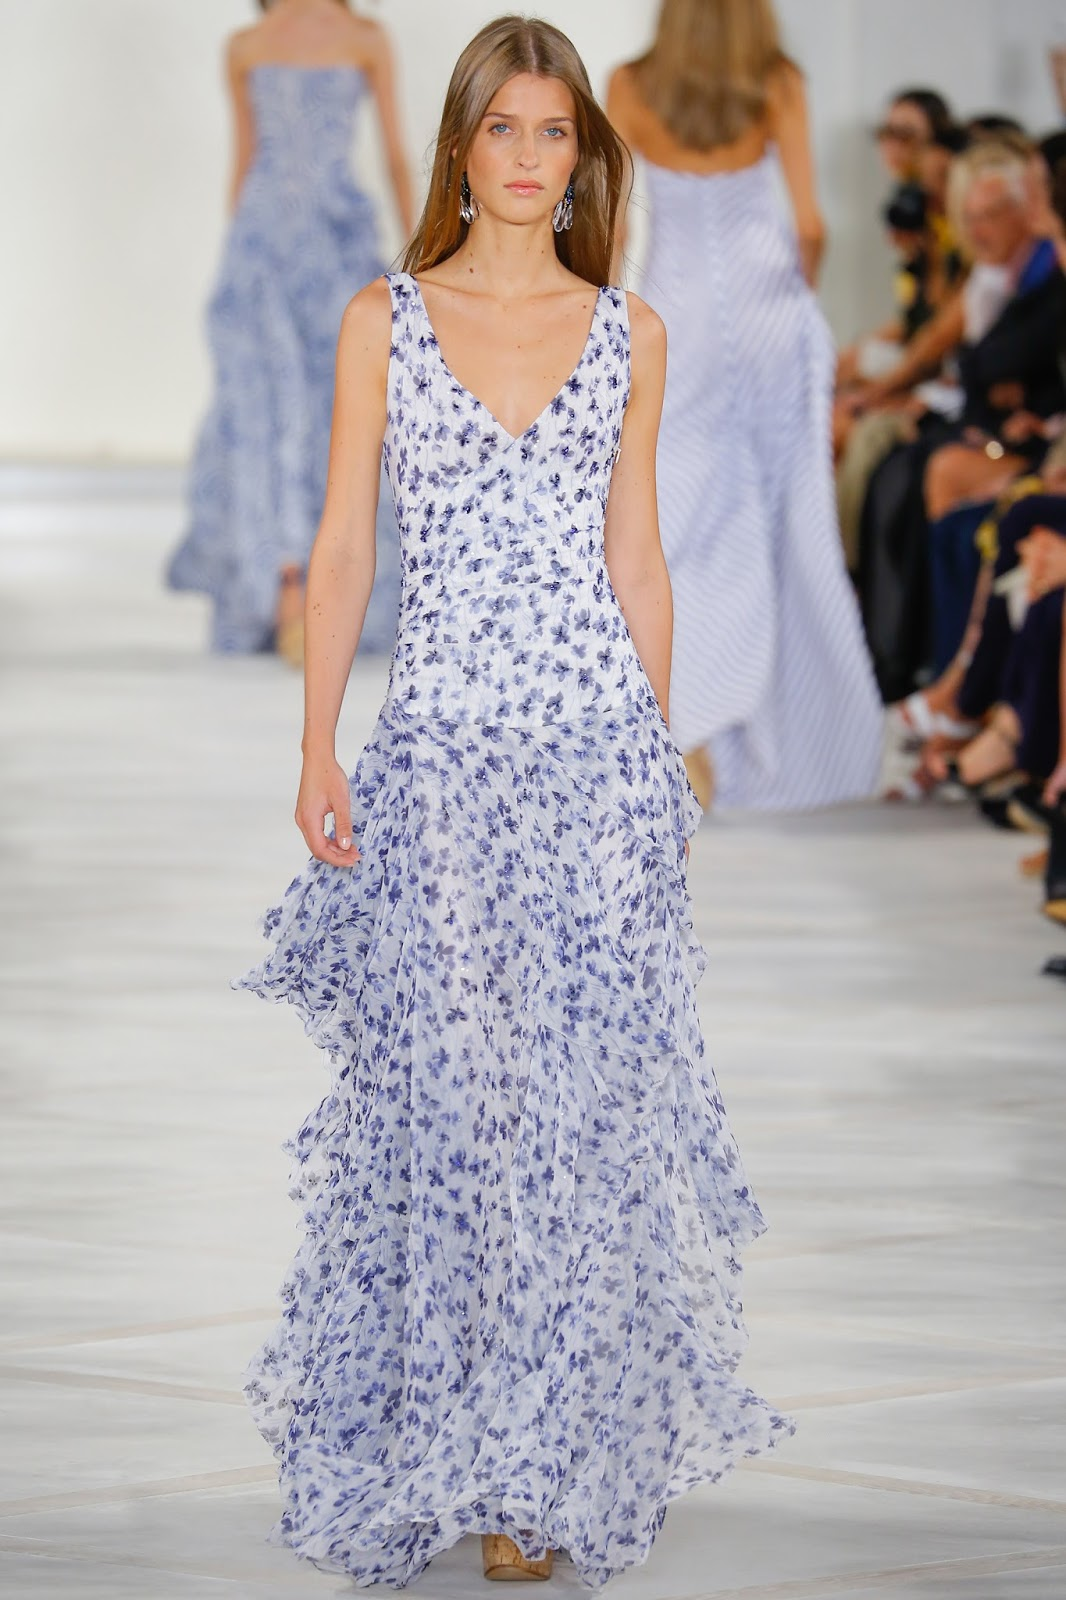 Ralph Lauren SS16, via fashionedbylove.co.uk british fashion blog